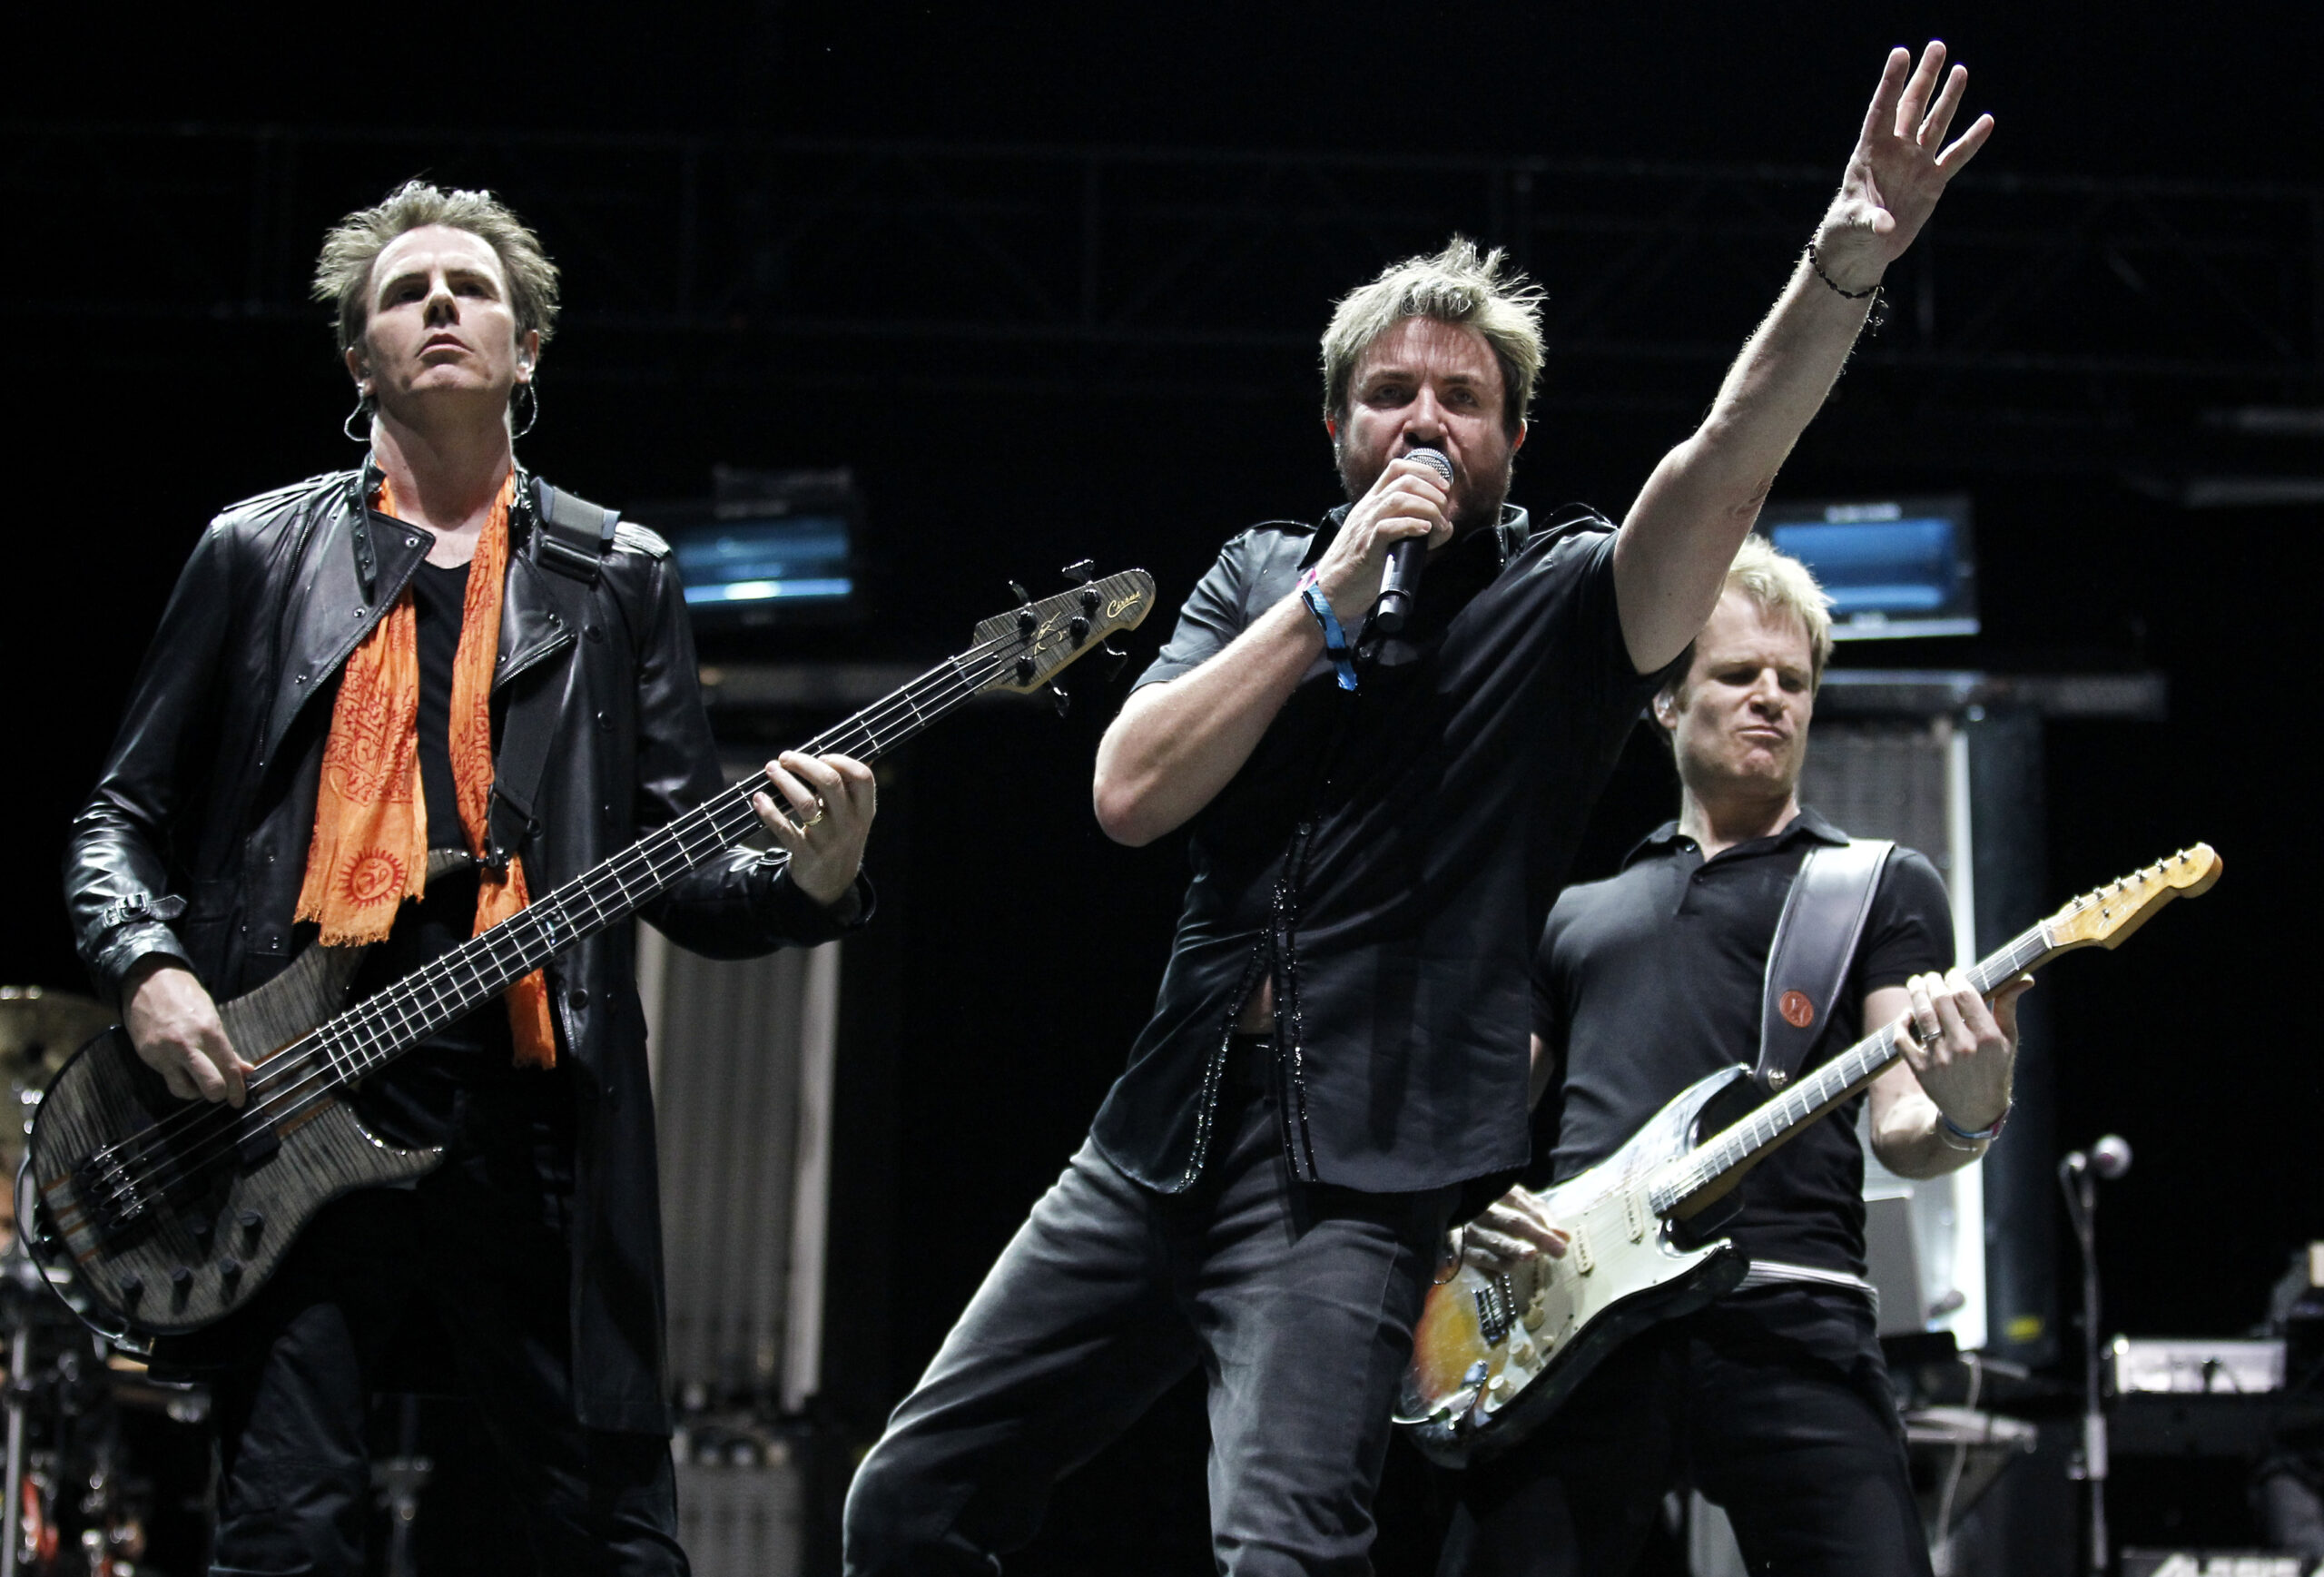 The British band Duran Duran perform during the last day of the Coachella Valley Music & Arts Festival in Indio